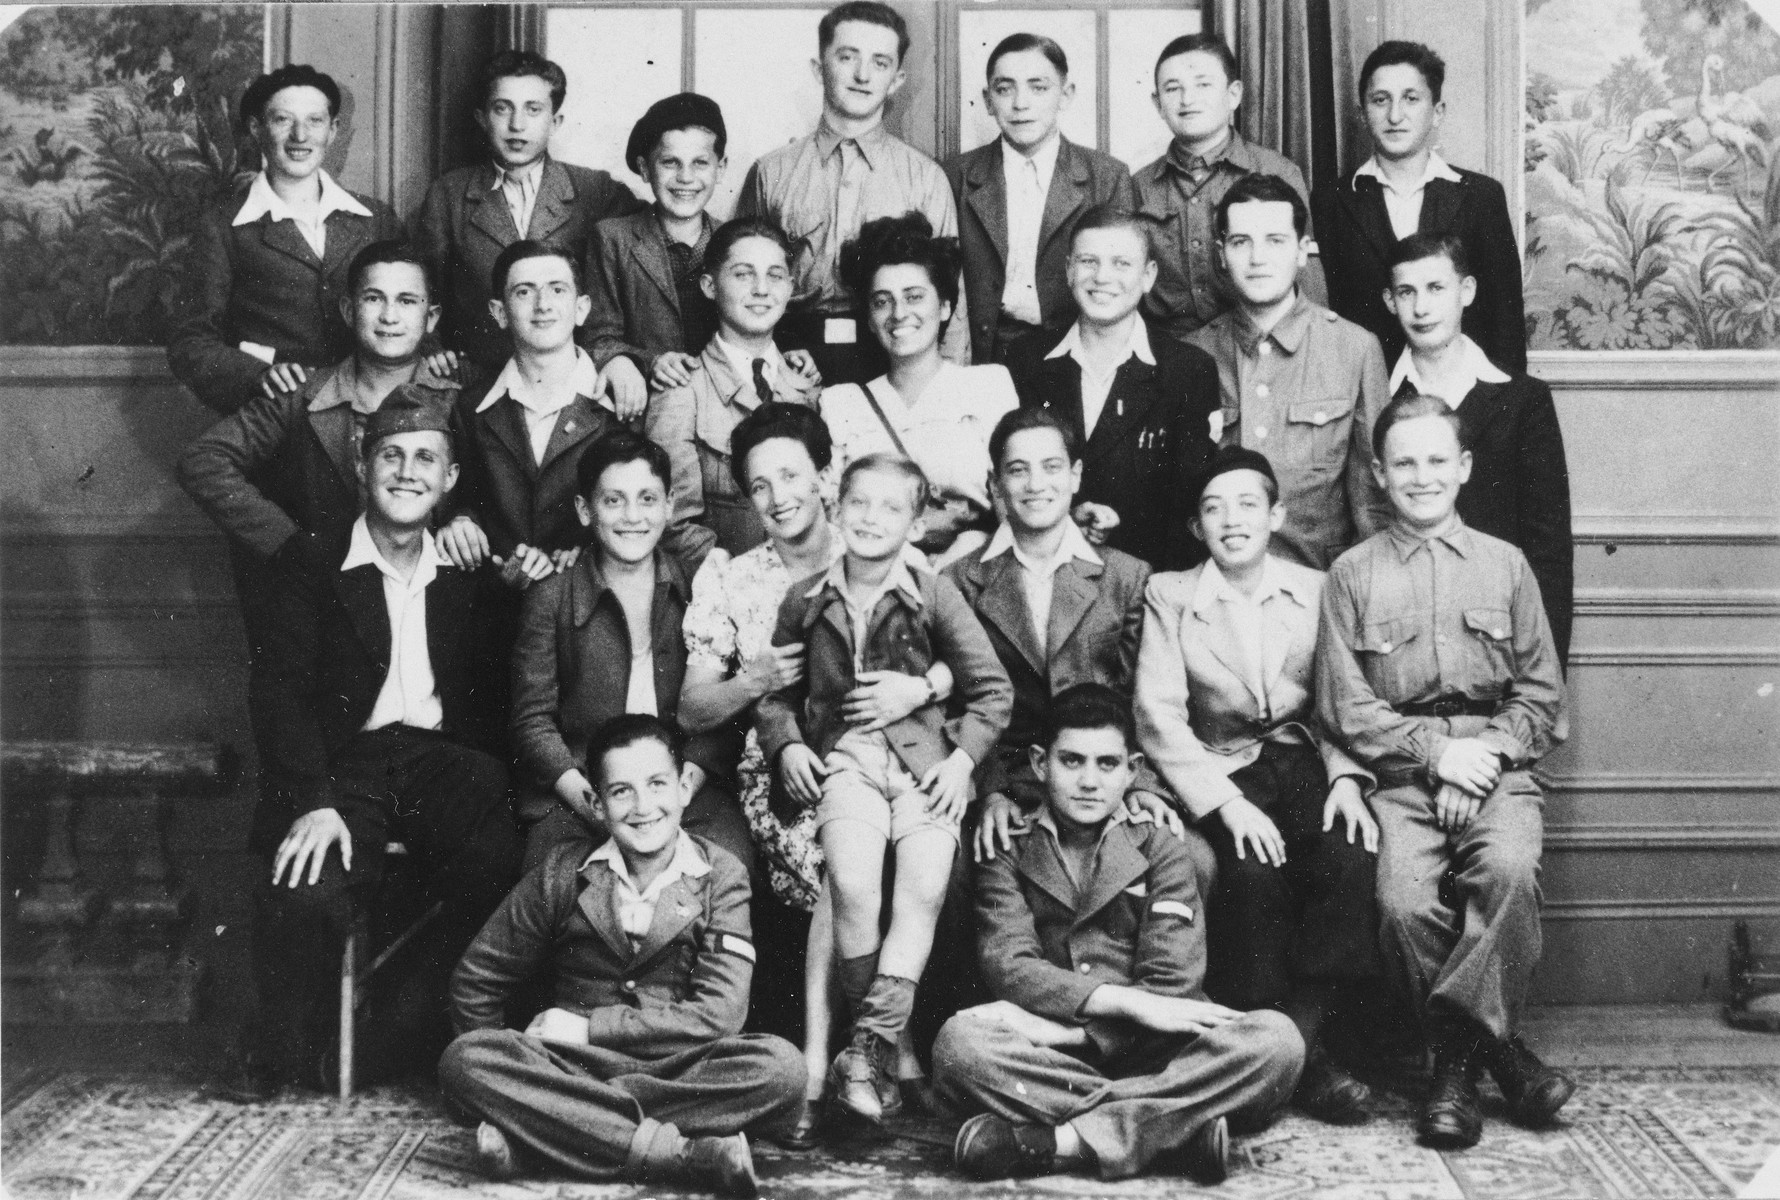 Group portrait of OSE staff and Jewish DP youth who numbered among the Buchenwald children, at an OSE (Oeuvre de Secours aux Enfants) children's home in France [either in Ambloy or Taverny].  Among those pictured is Mme Gaby Wolff-Cohen (second row from the top, in the center).  Top row, second from left is Abraham Tuszynsky from Piotrokow Trybunalski., and Solomon Hans third from right. Seated on the lap of the other woman is Izio Rosenman from Demblin.  Jakob Rybsztajn is seated in the same row second from the right.  First Seated Row , third from the rght is Saul Fruchter